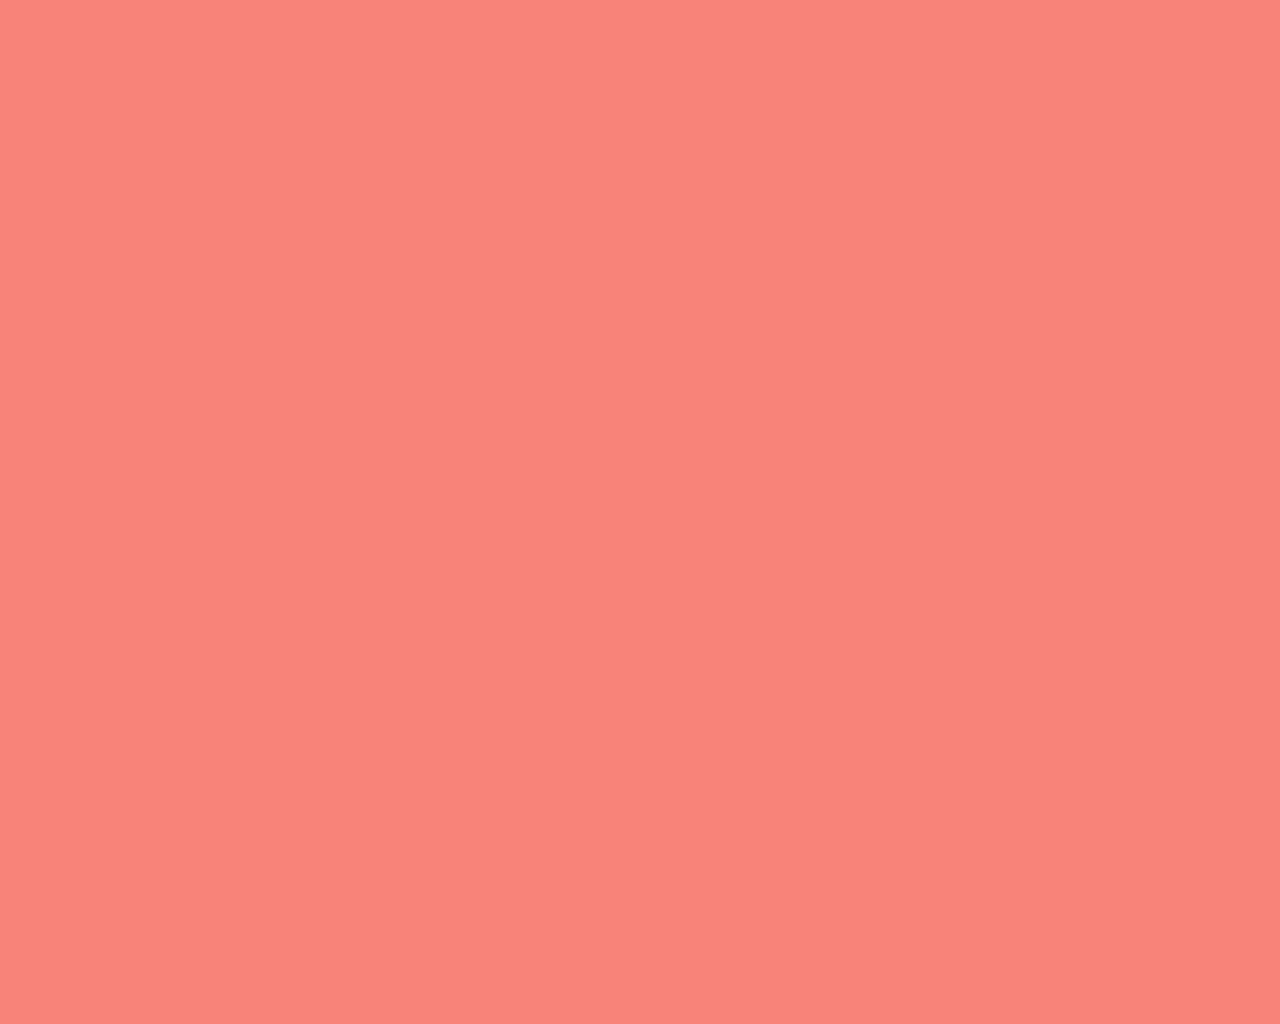 1280x1024 Tea Rose Orange Solid Color Background